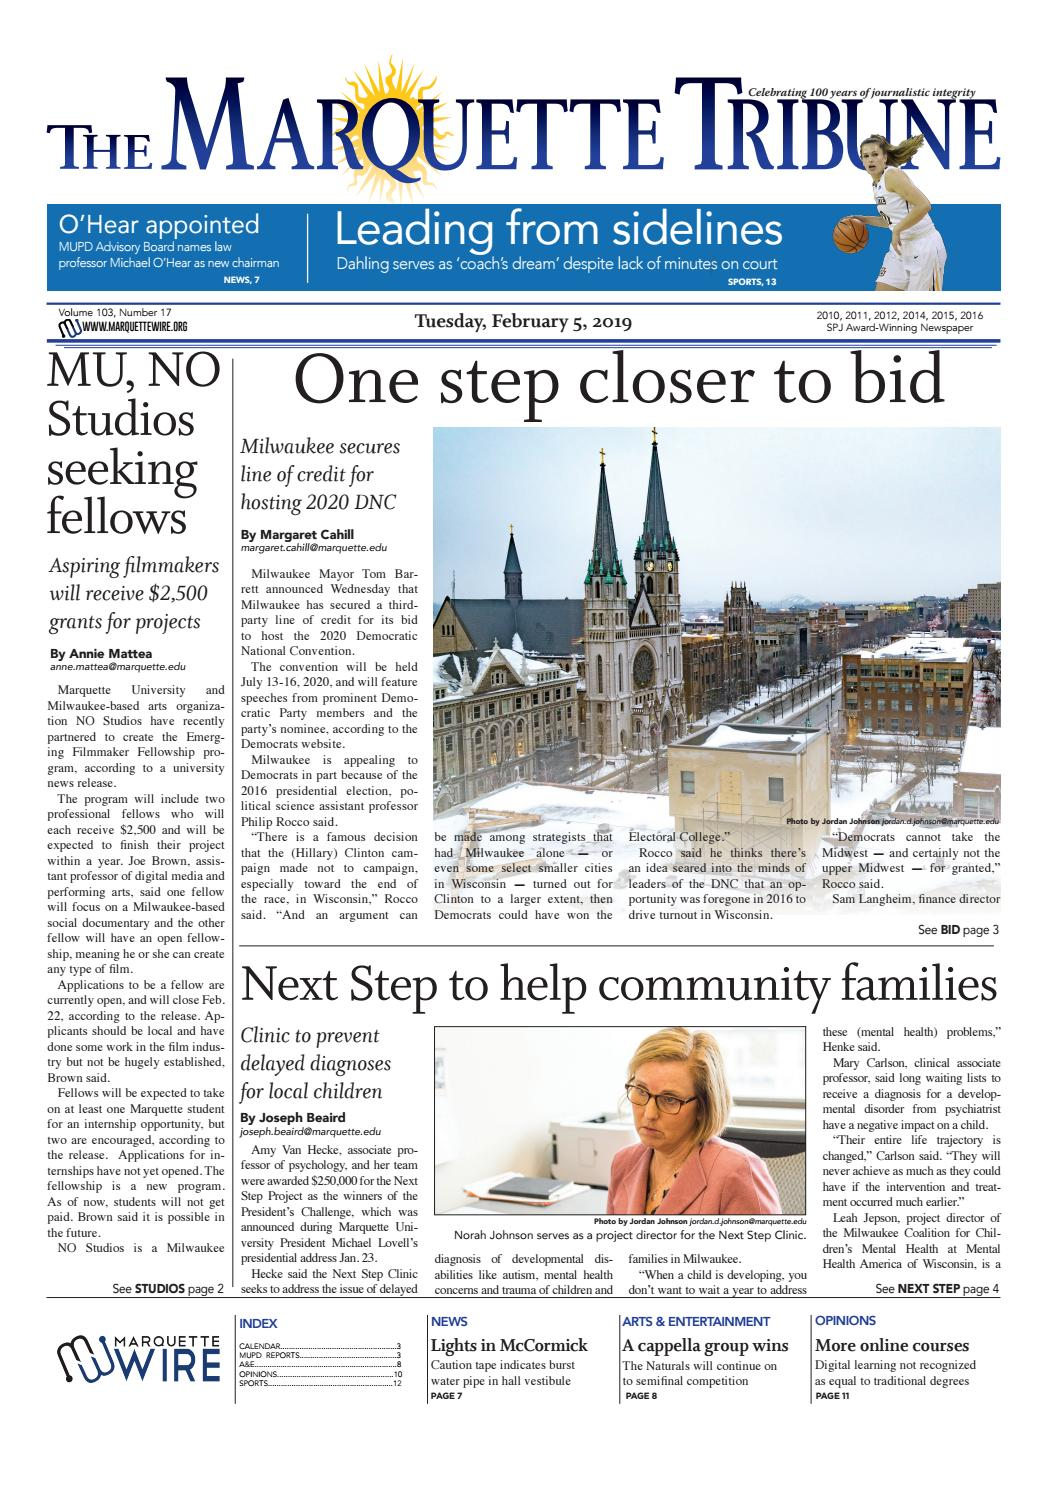 The Marquette Tribune | Tuesday, February 5, 2019 by